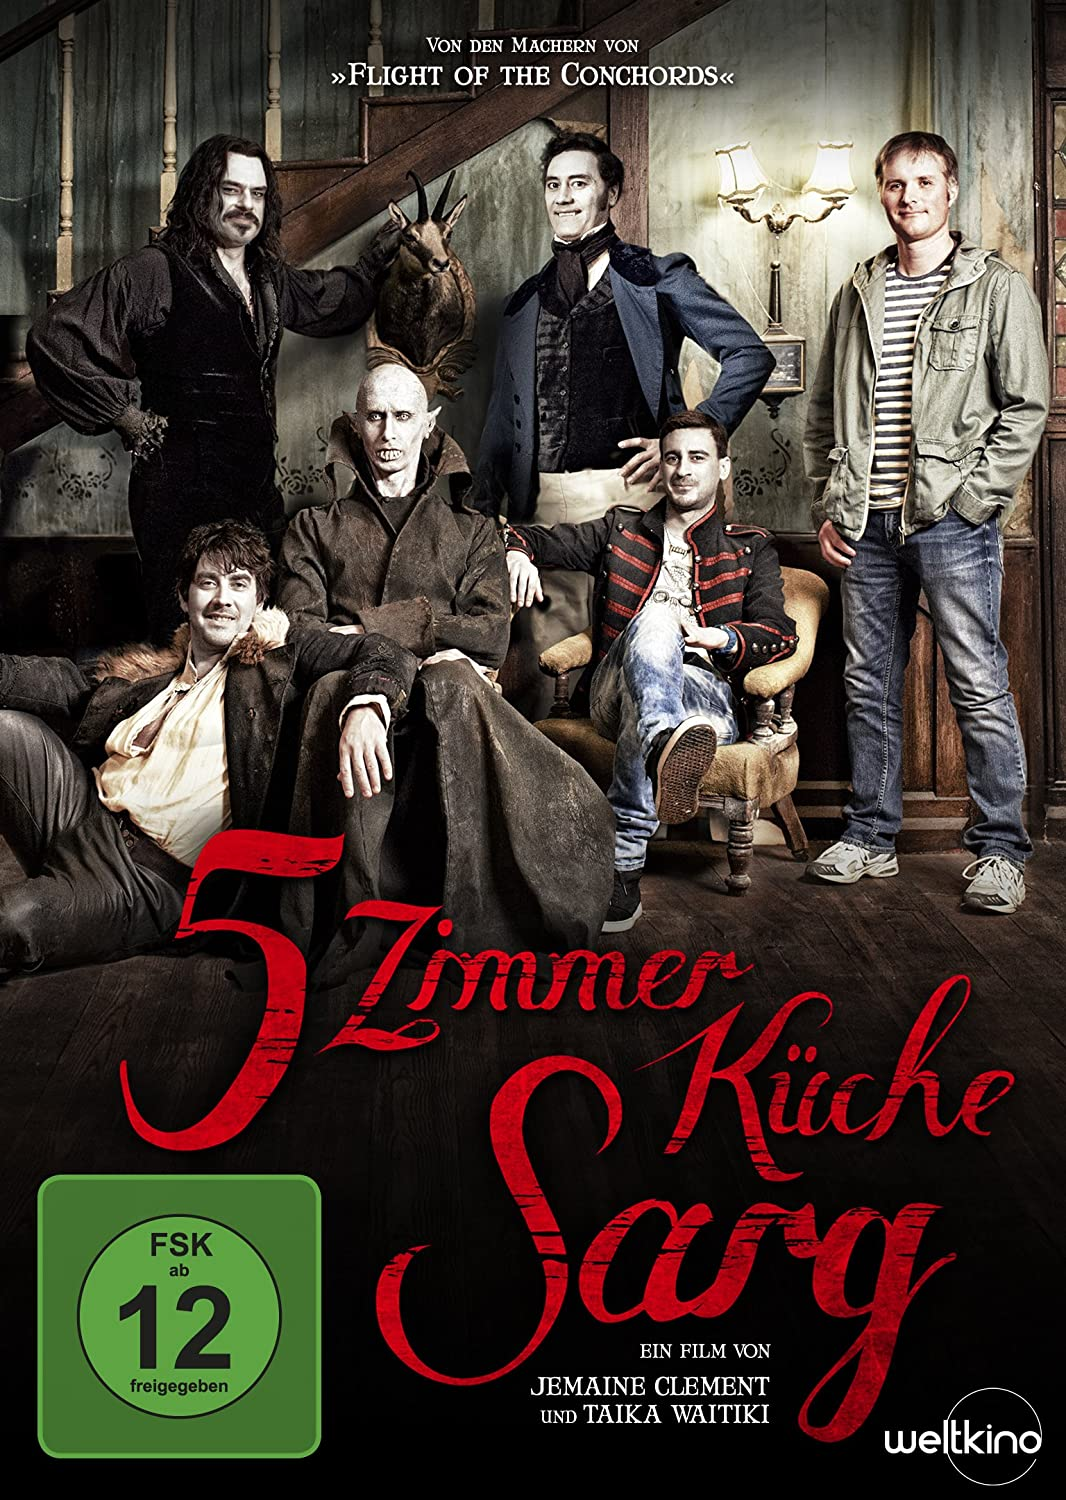 18 Zimmer, Küche, Sarg: Amazon.de: Taika Waititi, Jemaine Clement